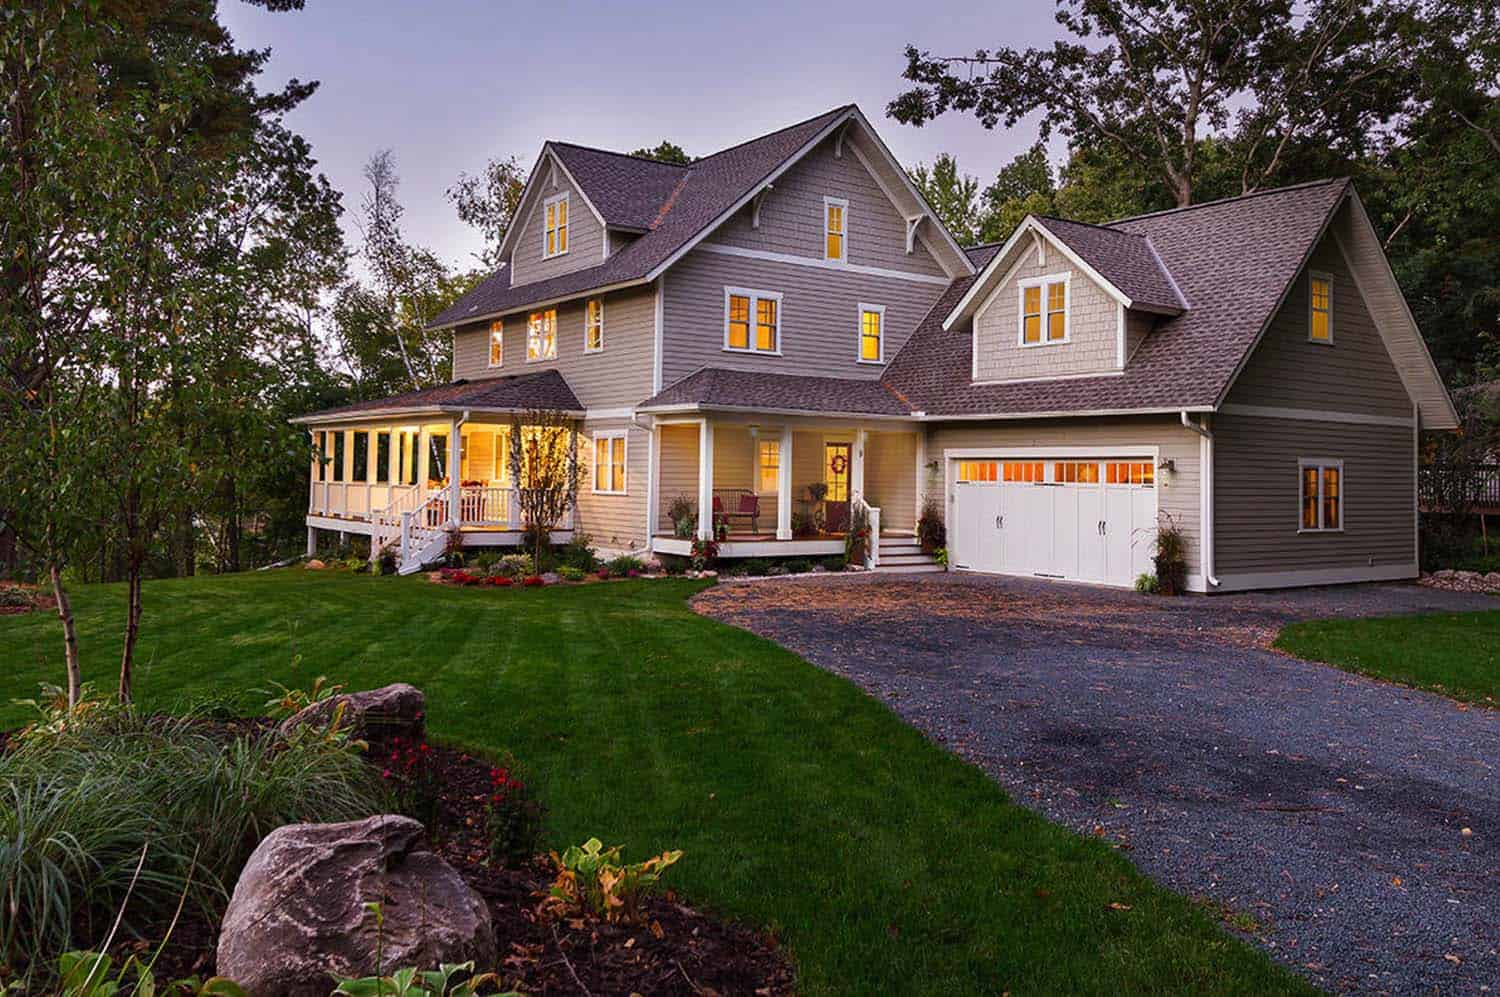 One And A Half Story House Floor Plans Charming Lakeside Farmhouse Nestled On A Wooded Site In